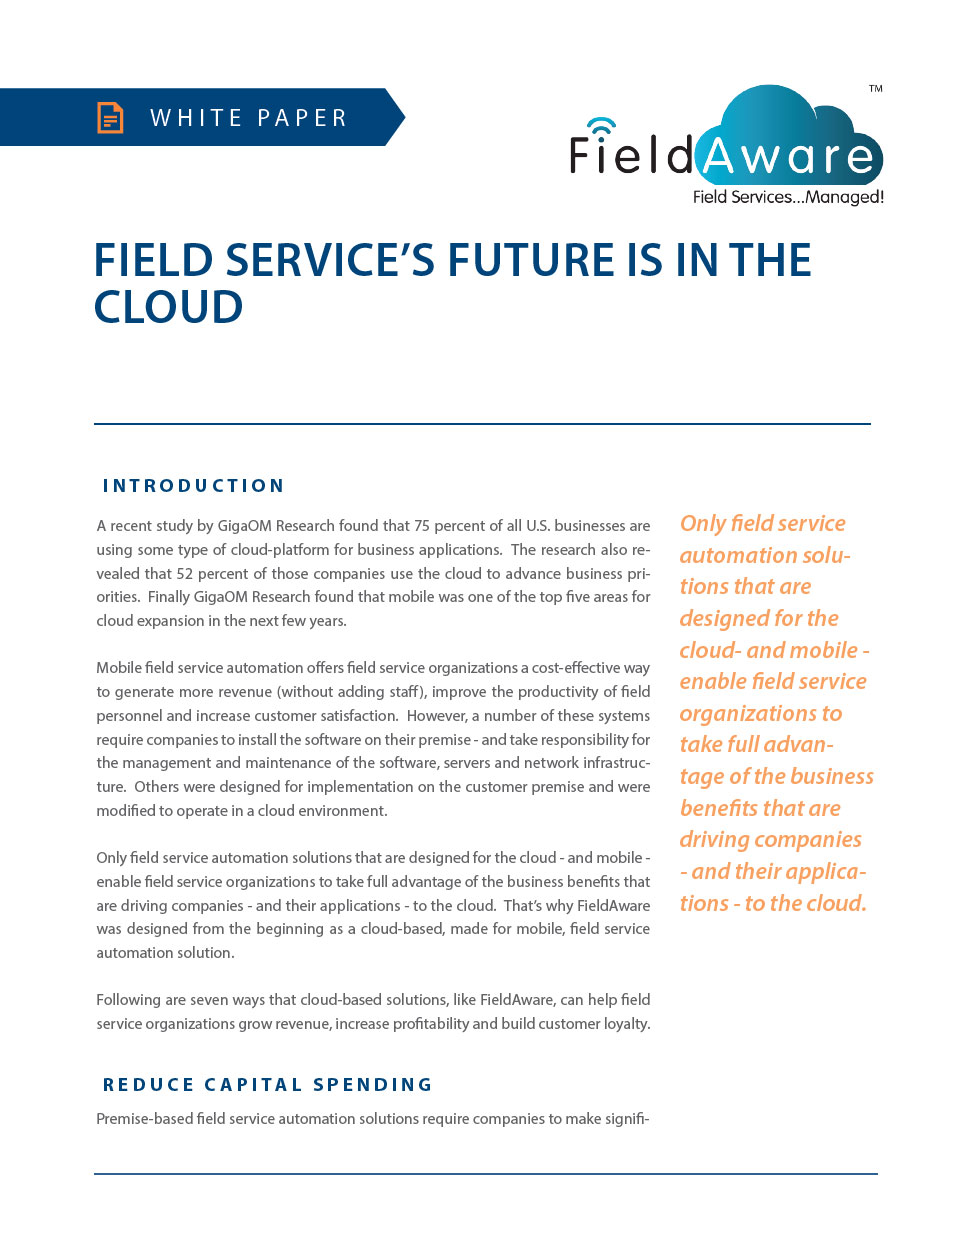 Field Service's Future Is In The Cloud White Paper